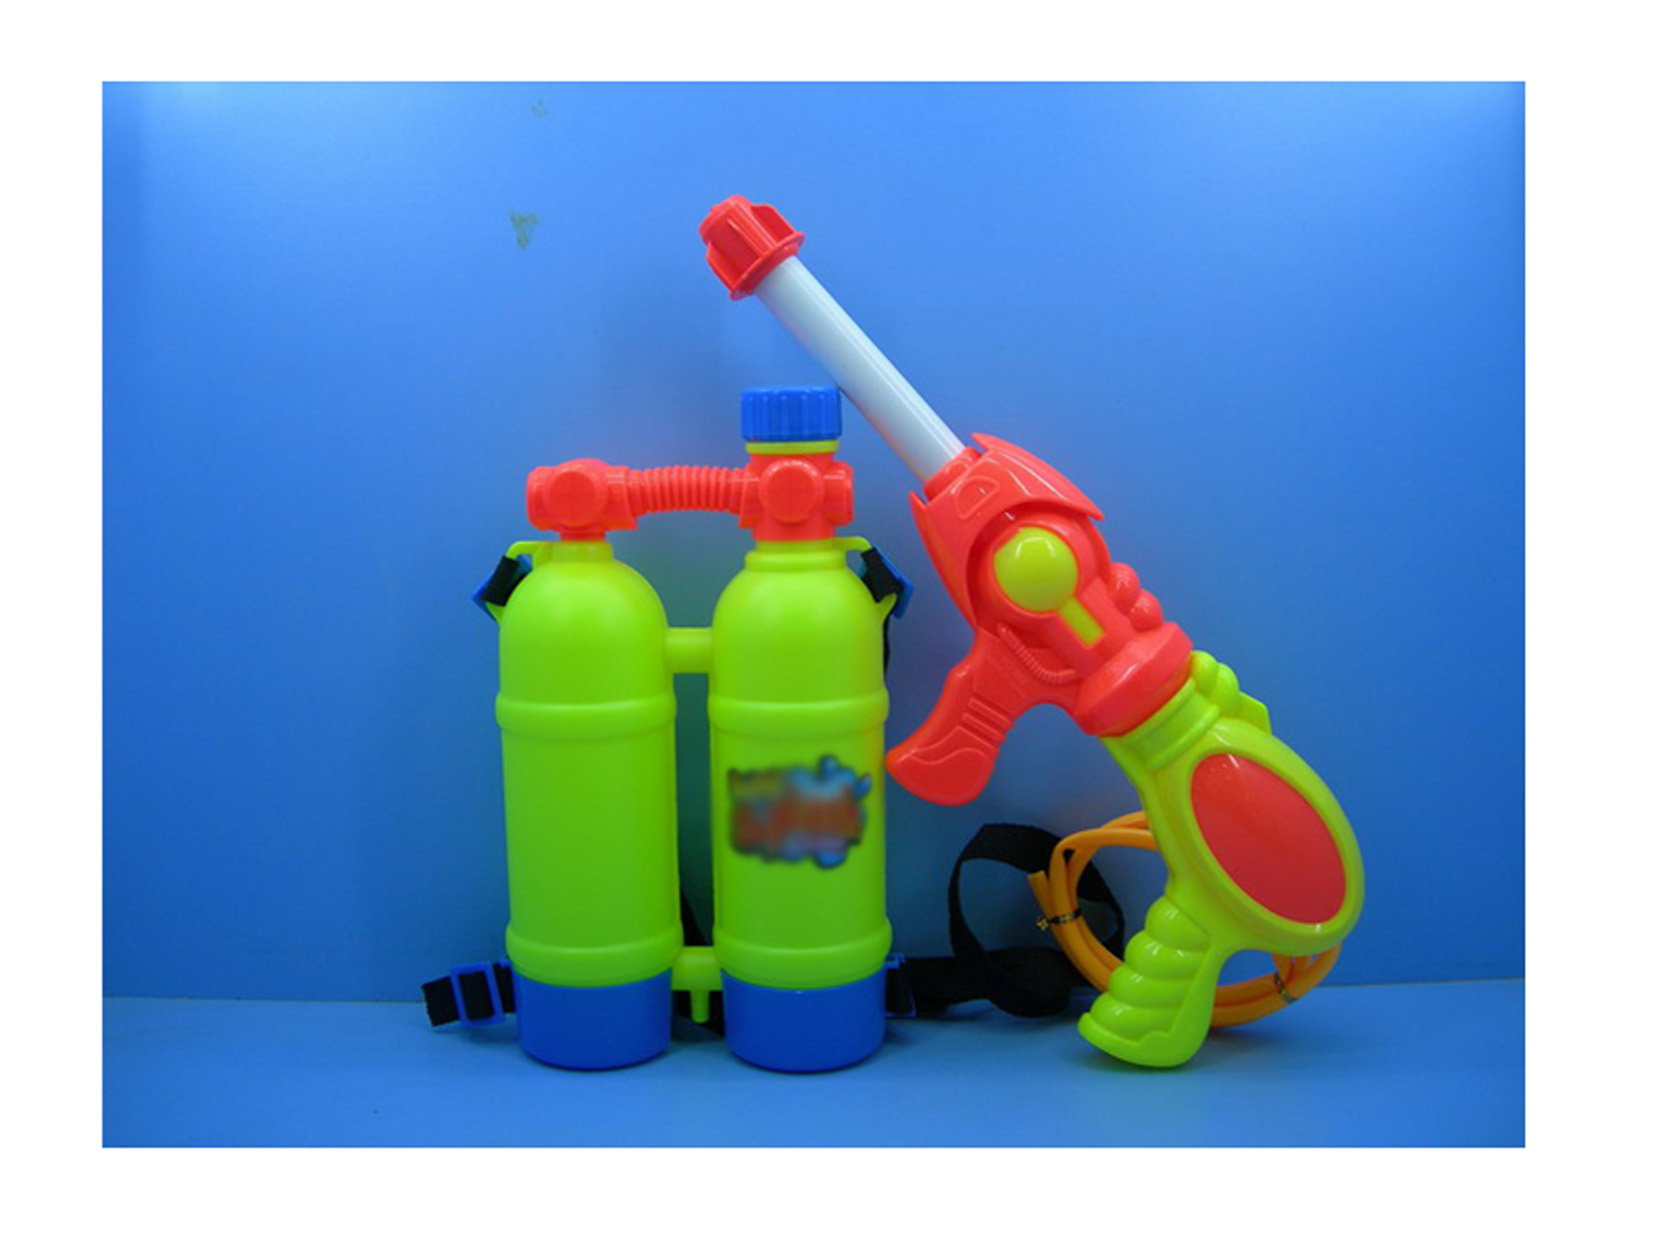 Child Summer Beach Gaming Water Gun Toy for Kids Outdoor Super Soaker Blaster Fire Backpack Pool Toy Set